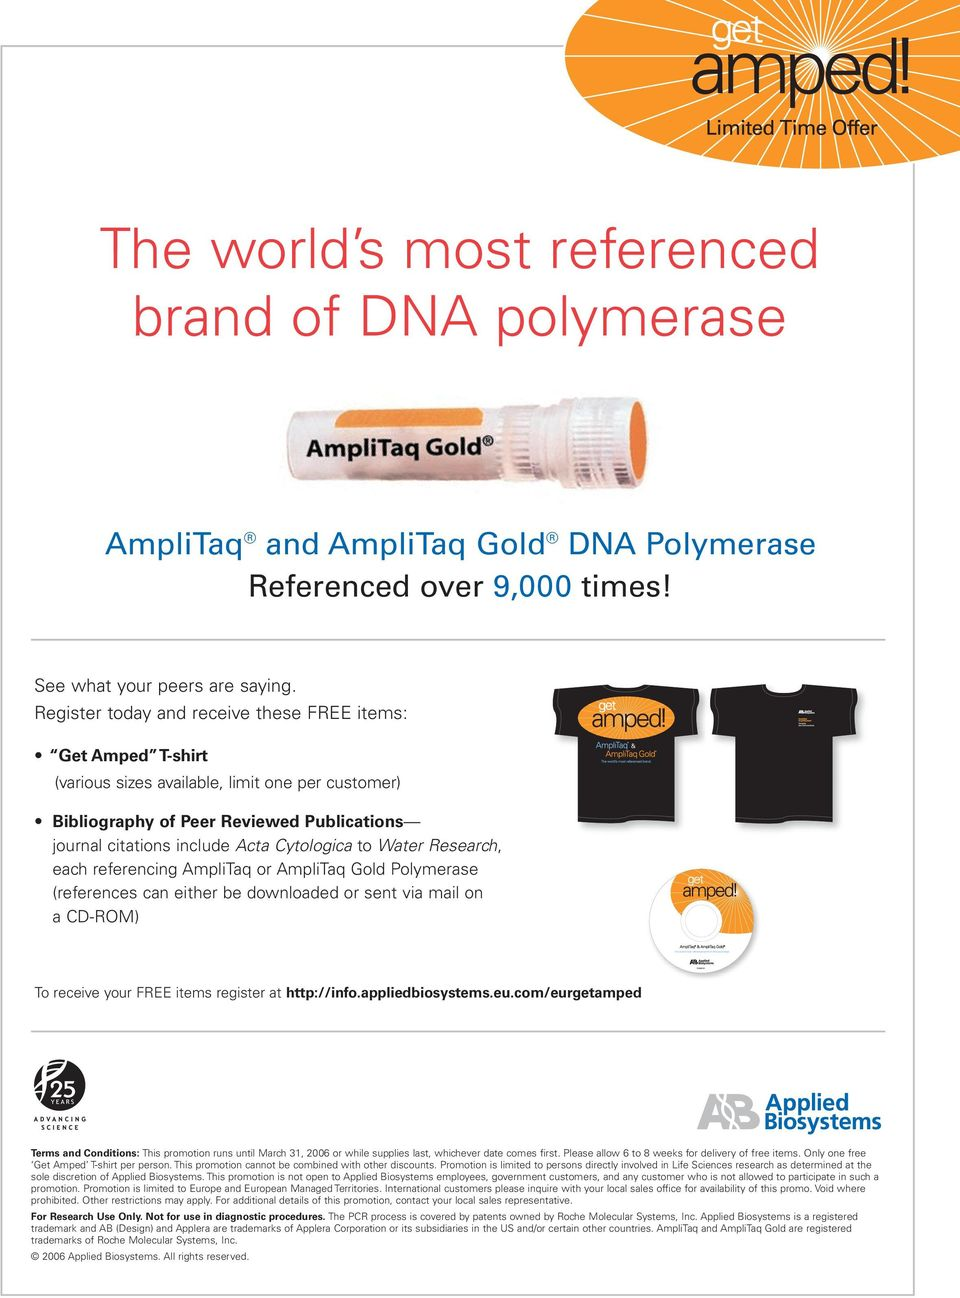 to Water Research, each referencing AmpliTaq or AmpliTaq Gold Polymerase (references can either be downloaded or sent via mail on a CD-ROM) To receive your FREE items register at http://info.